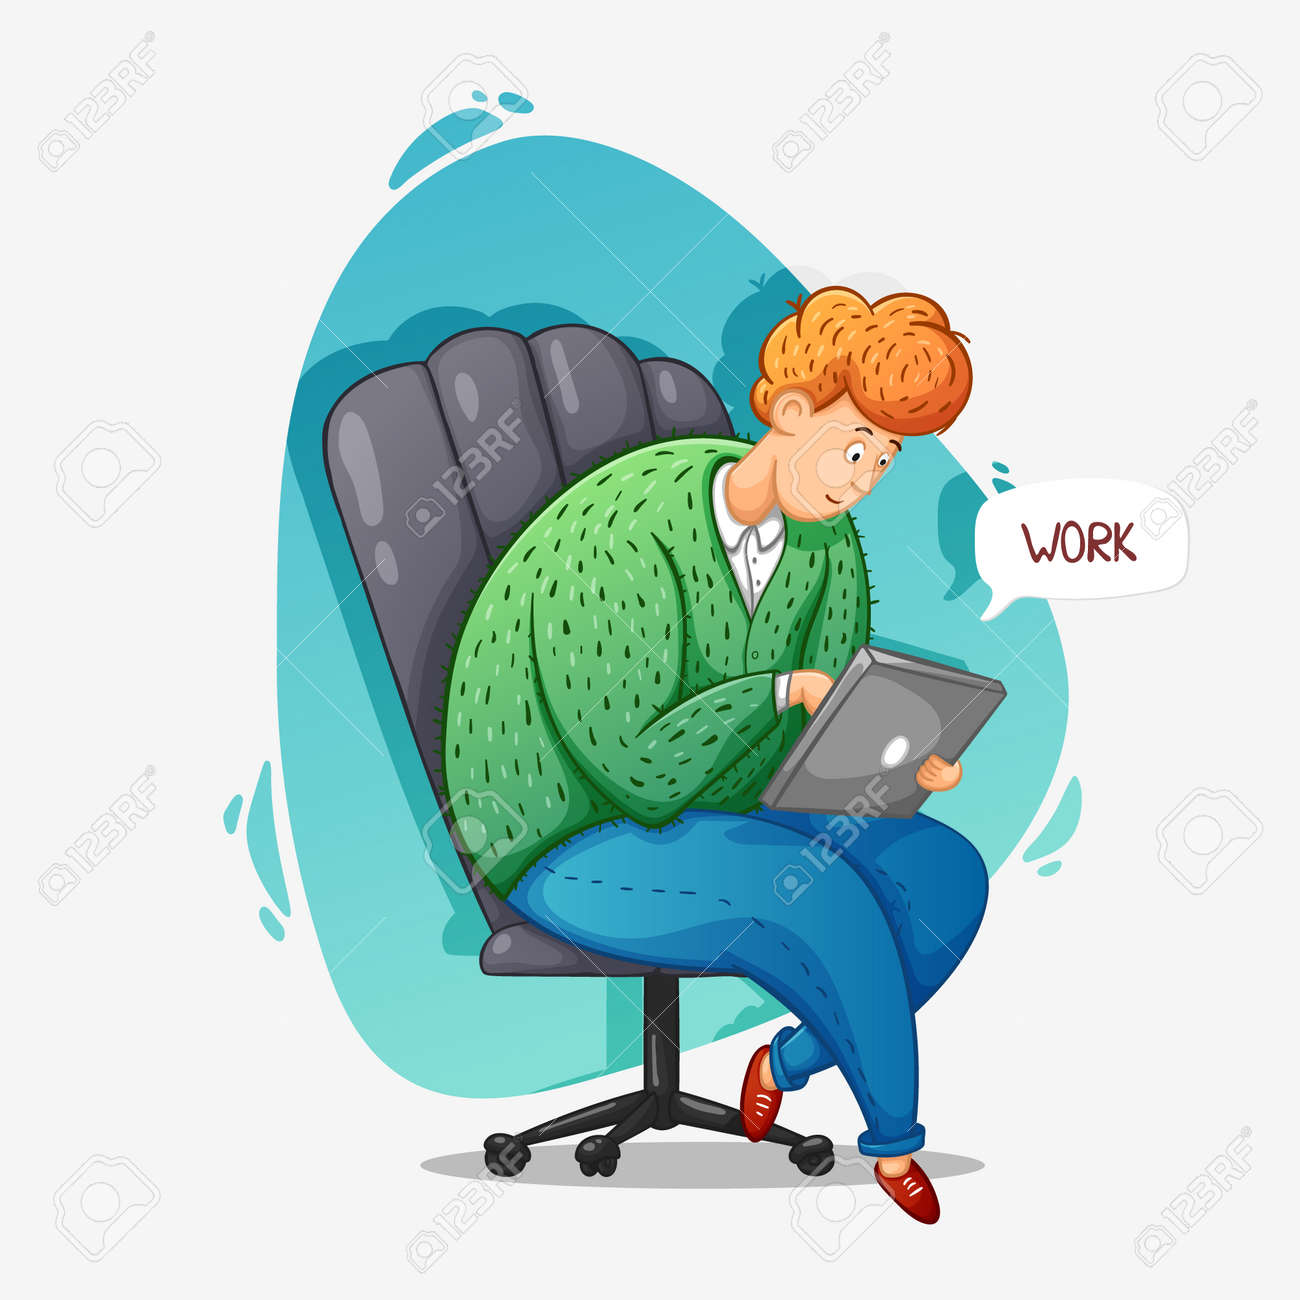 The guy works online at home. Distance work. Correspondence. Cartoon contour illustration in a vector. - 159520022